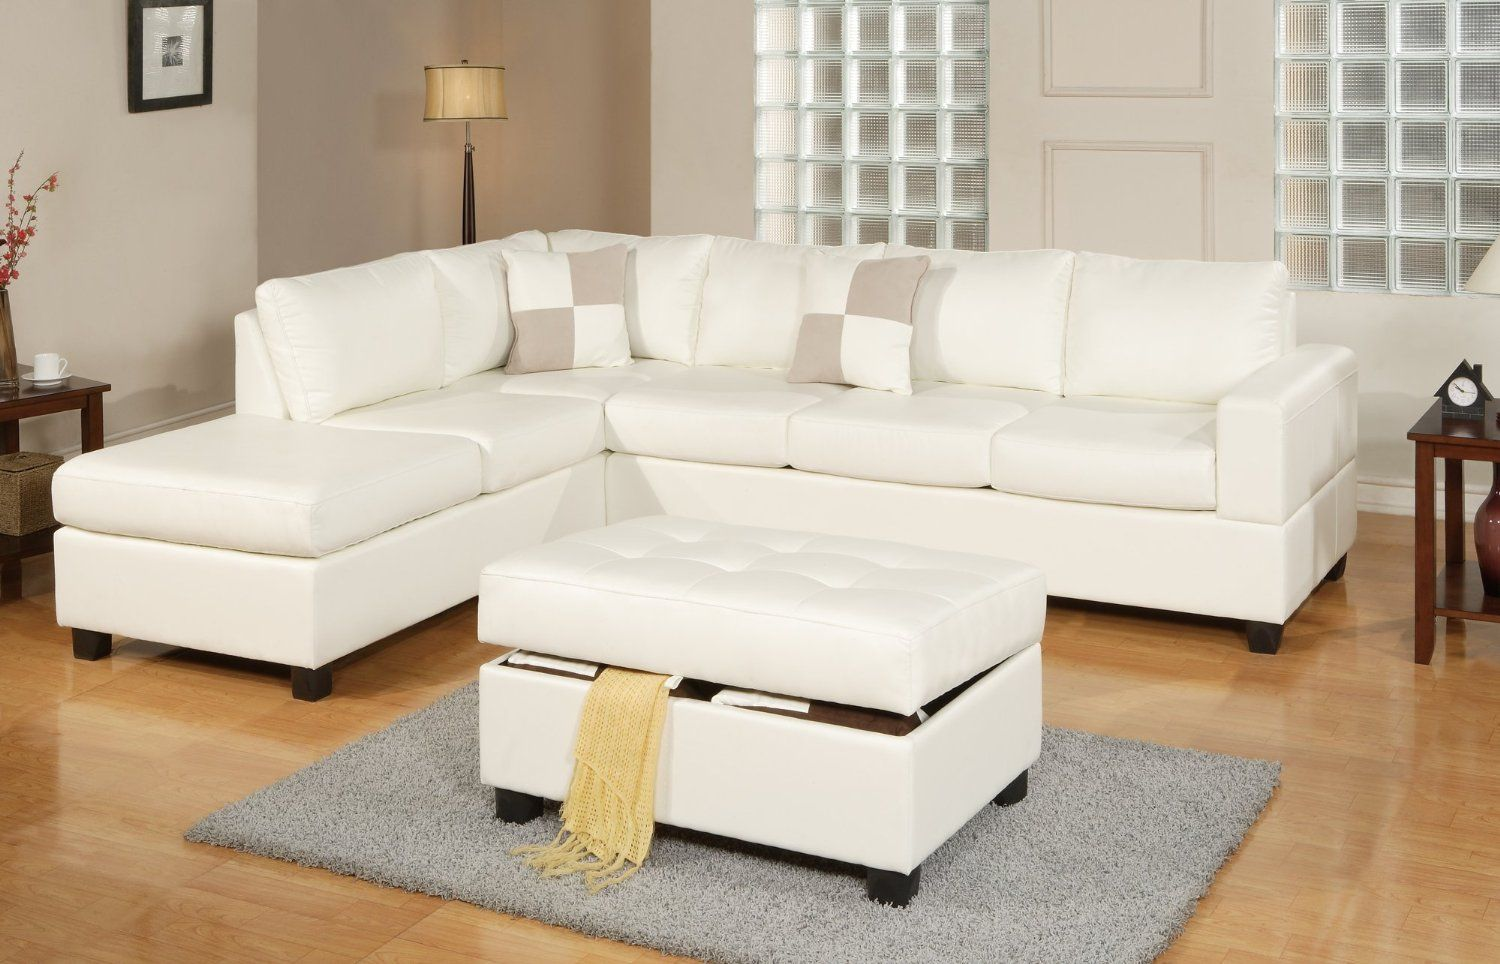 Leather Sectional Sofa for a clean design modern living room by